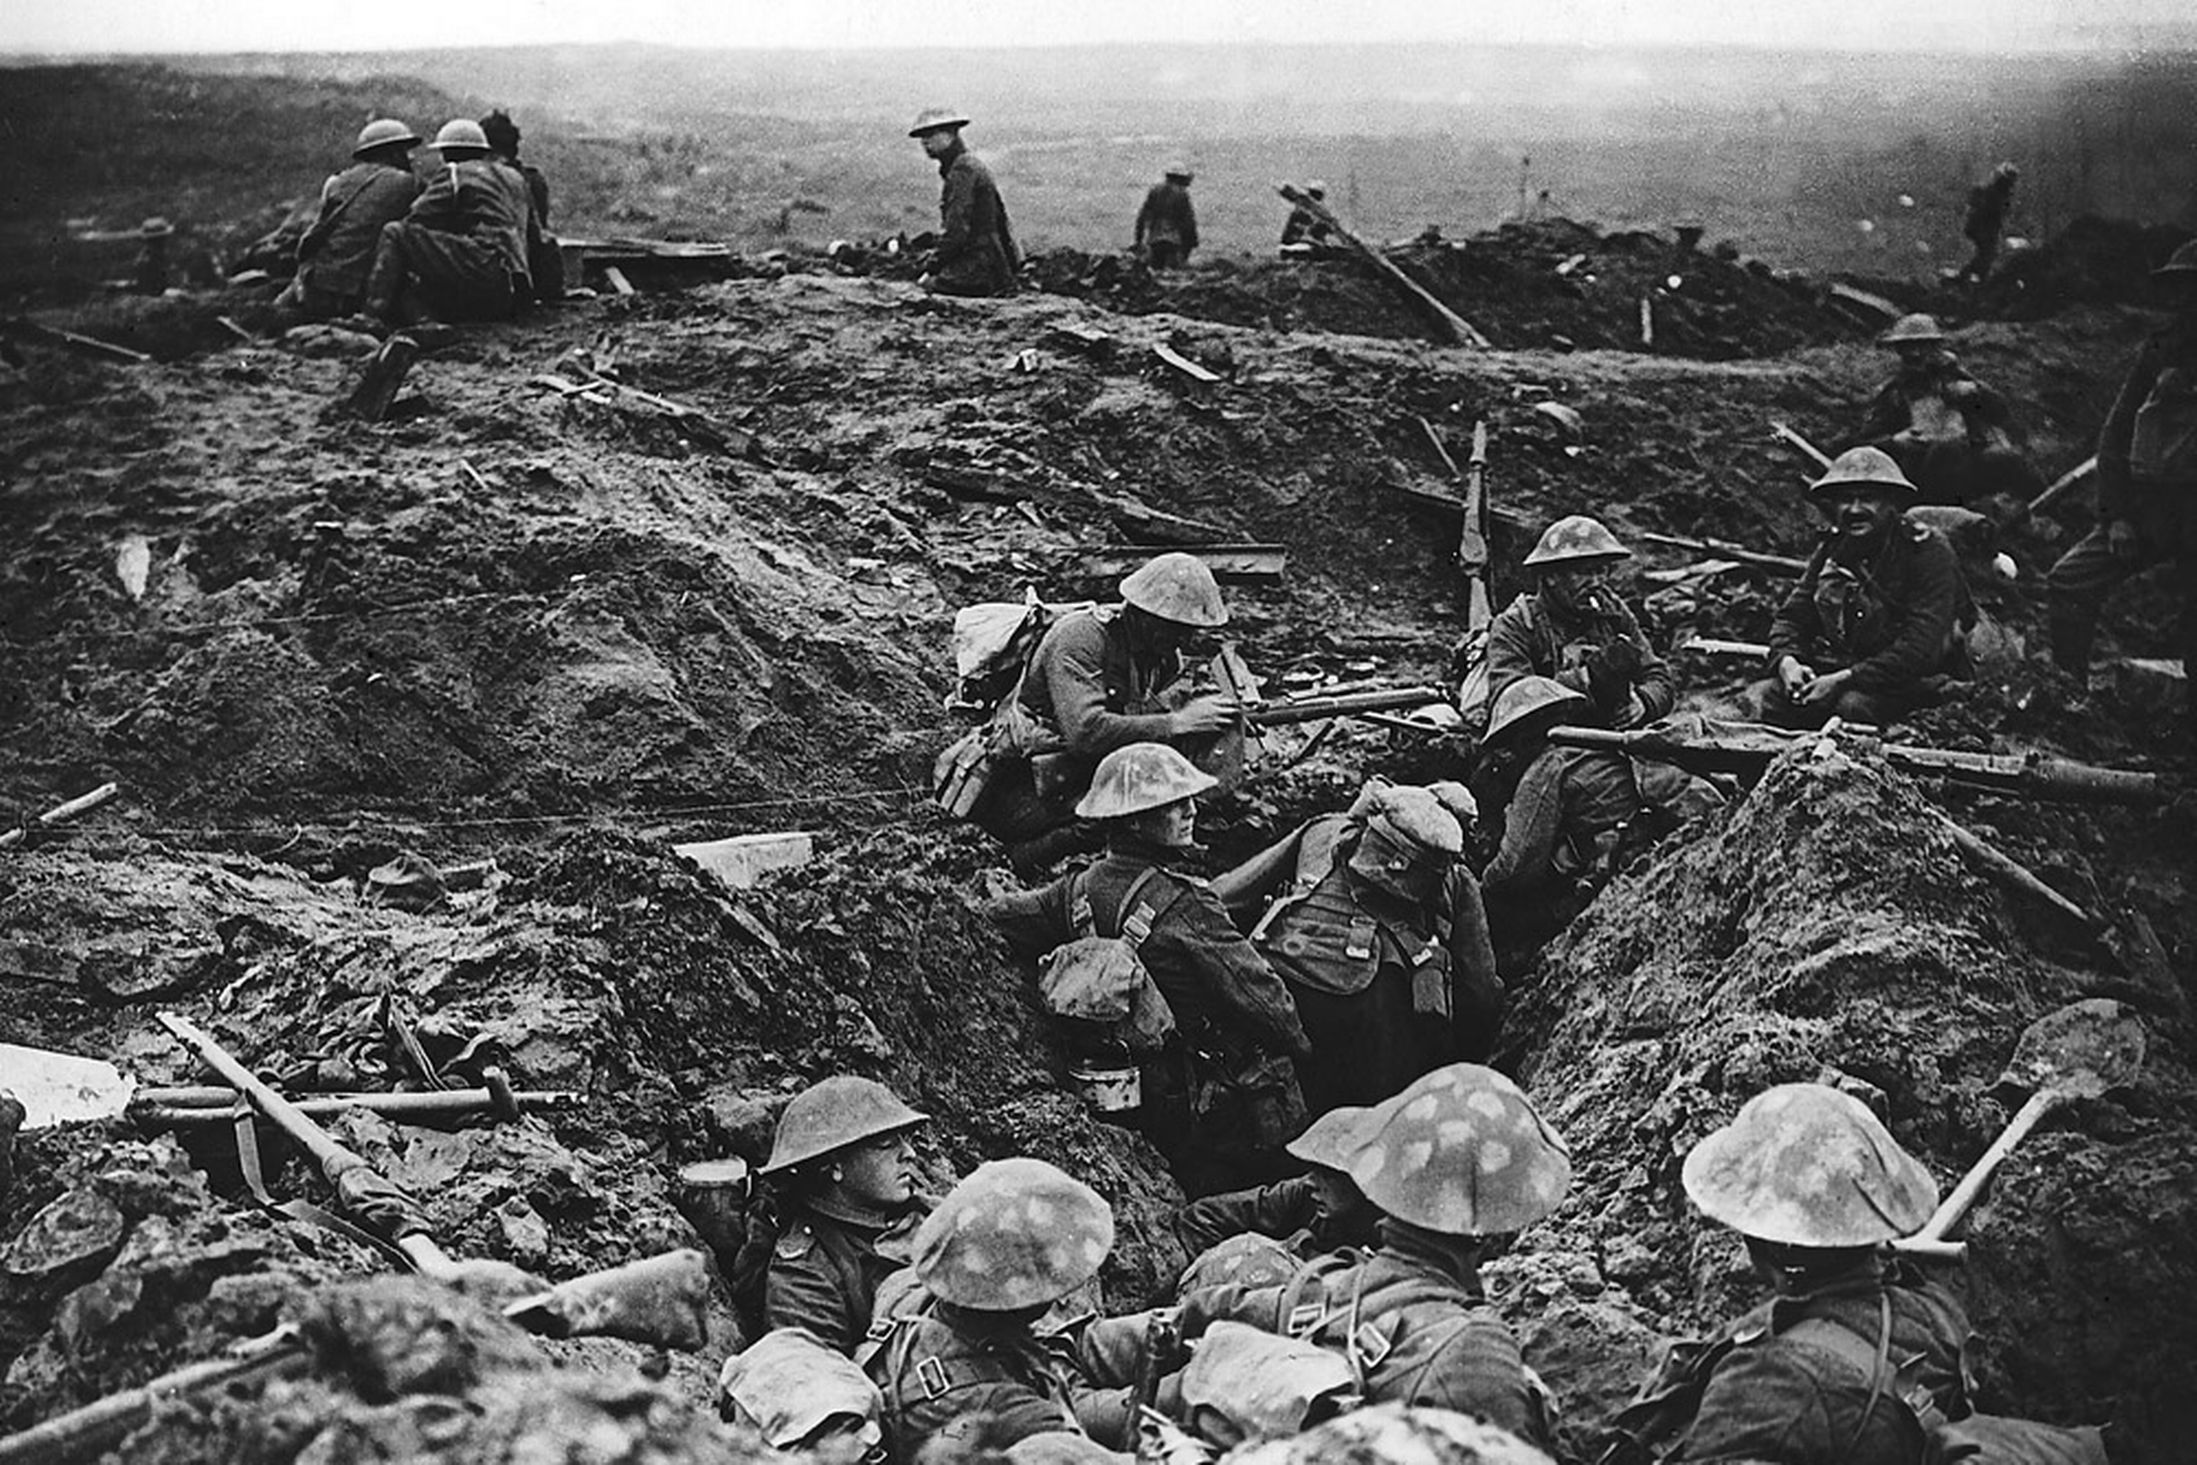 an analysis of the canadas war in 1914 for the world war one At the time of world war i, canada was a british dominionbritain's declaration of war brought canada into war as wellhowever, canadian government could determine the level o finvolvement in war on august 5,1914 the governor general of canadadeclared war on germany and canada raised a special expeditionaryforce to.